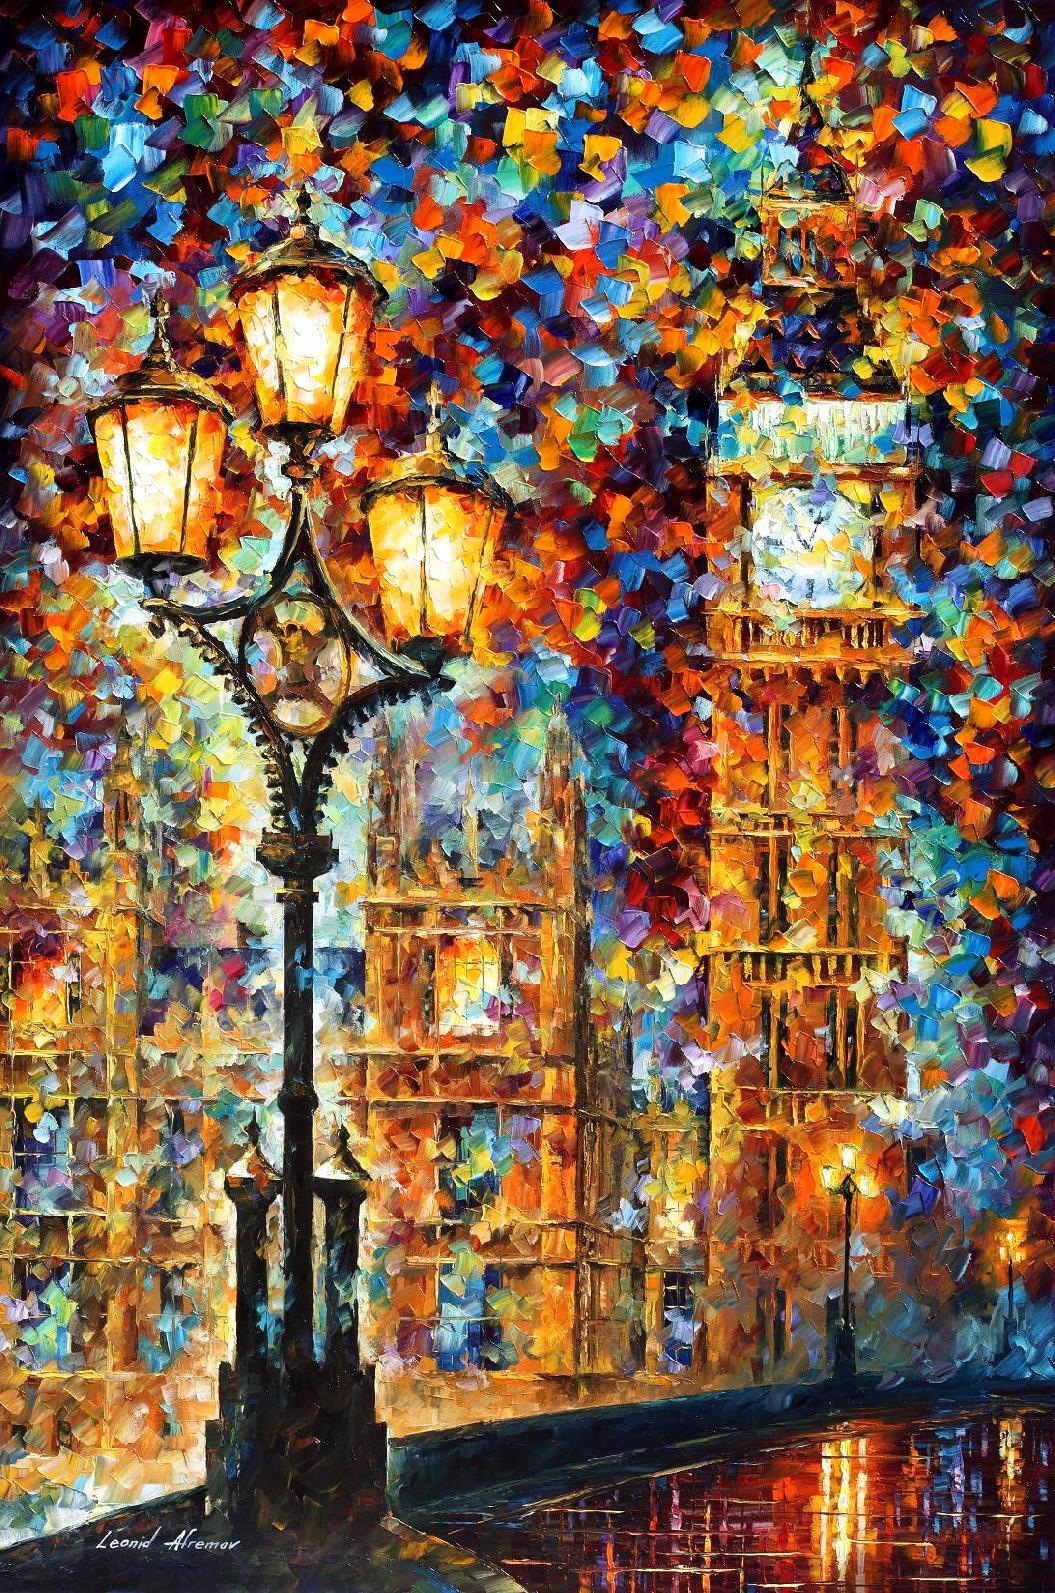 LONDON DREAMS -PALLETTE KNIFE OIL PAINTING ON CANVAS BY LEONID AFREMOV